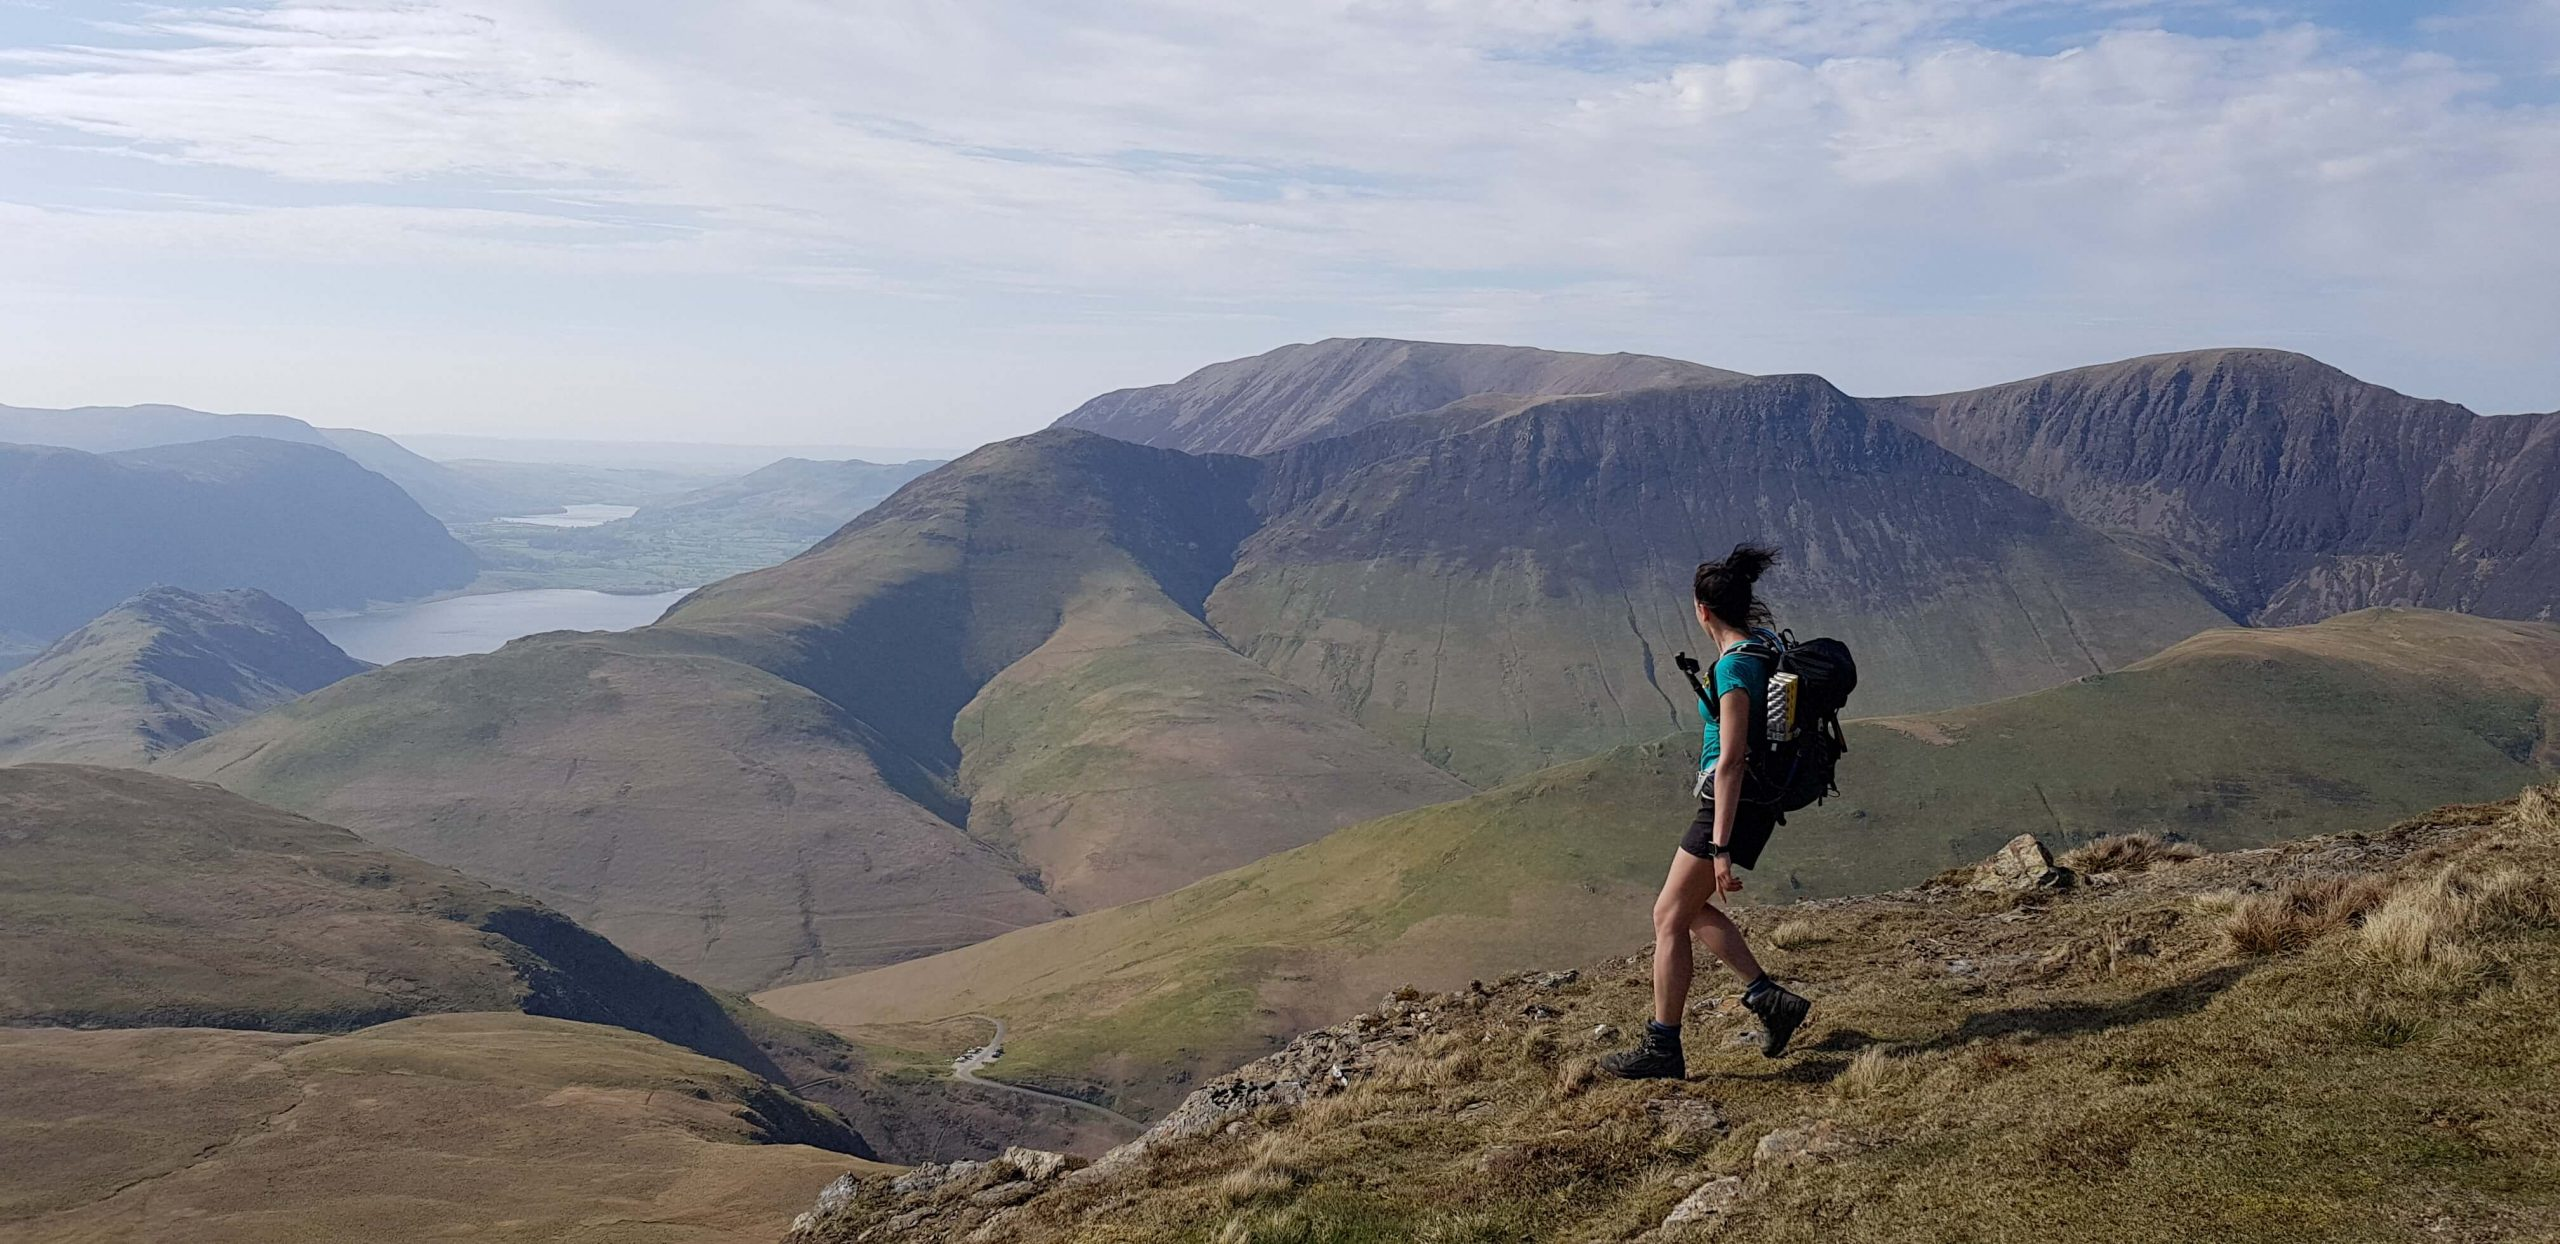 Adventurer Nic on Robinson during her Wainwright bagging challenge